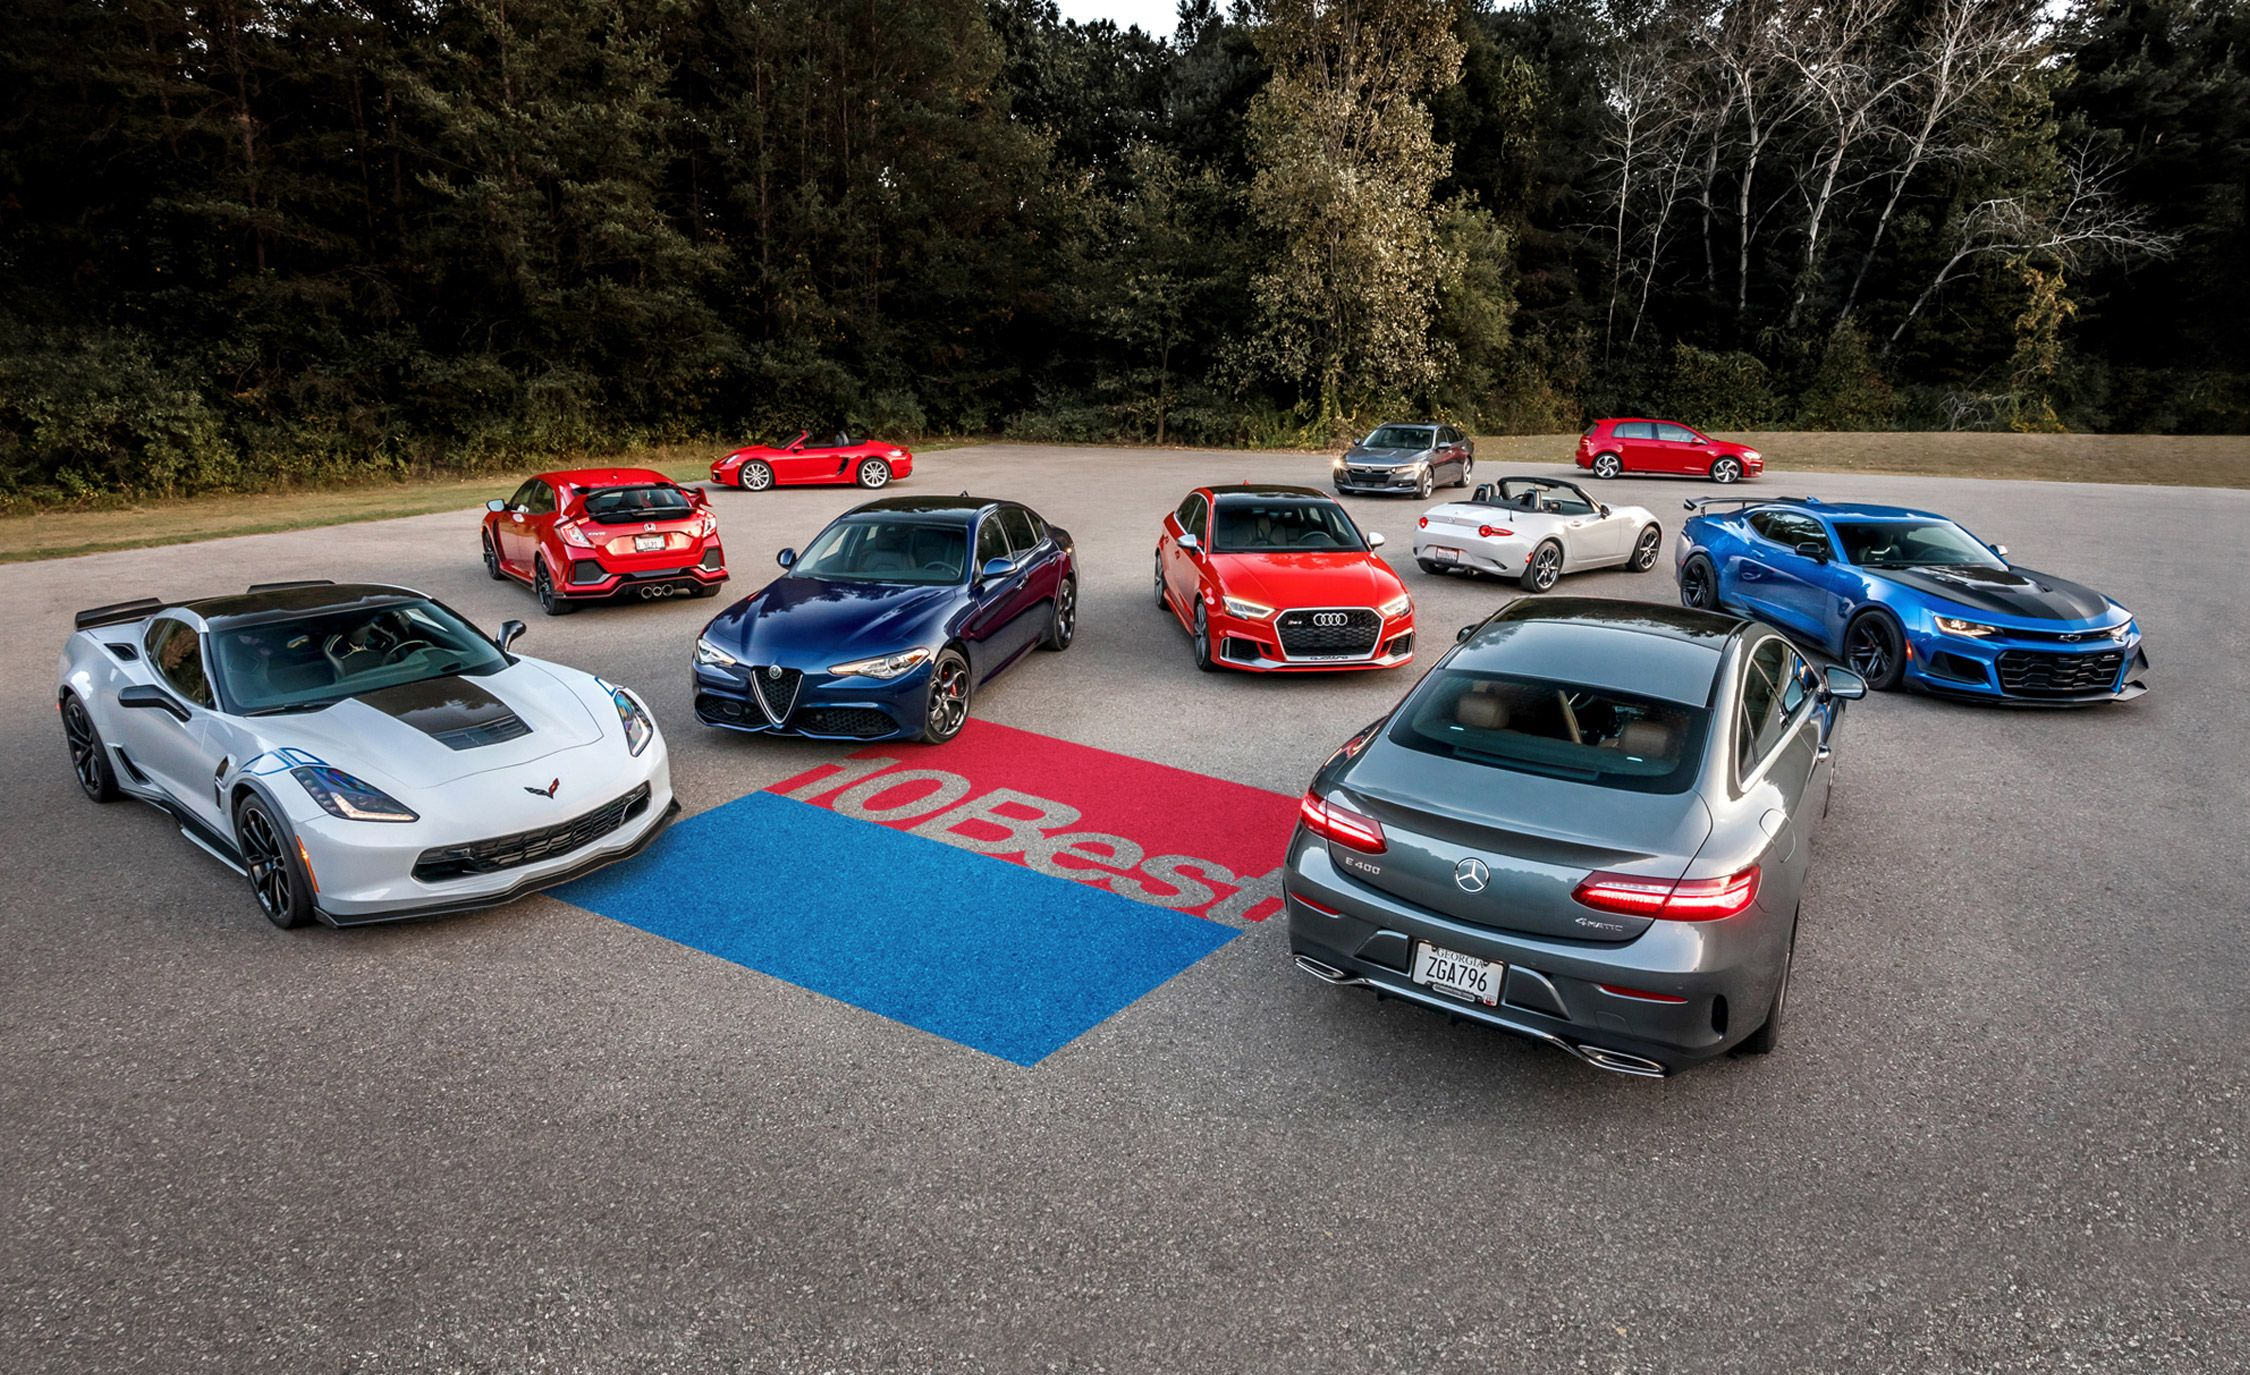 2018 10best cars the best cars for sale in america today featuremichael simari, marc urbano, andi hedrick, chris doane automotive, the manufacturers allow us to present our 2018 10best cars